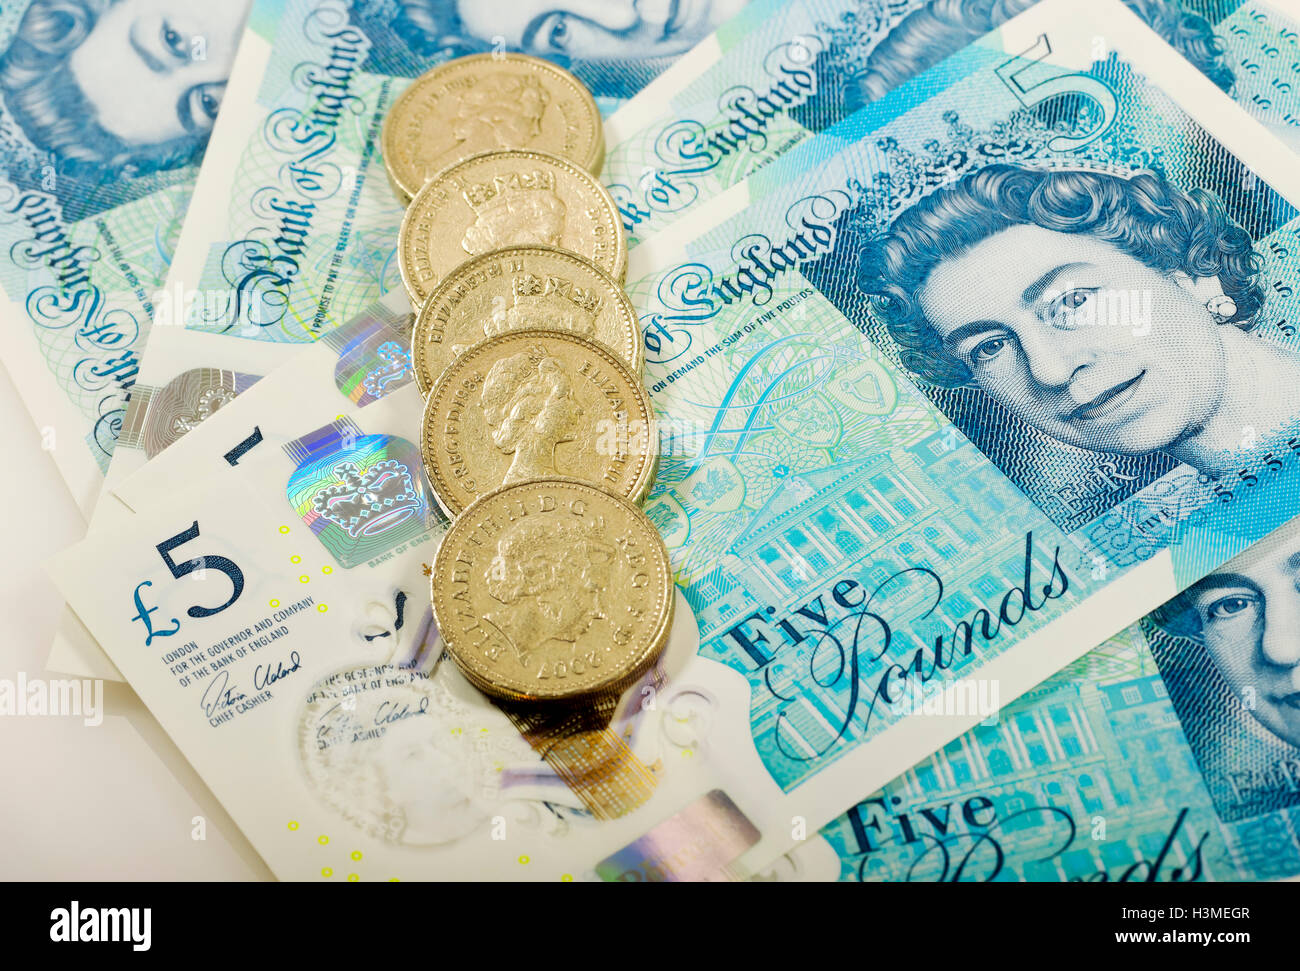 New polymer five pound notes and pound coins England UK United Kingdom GB Great Britain - Stock Image